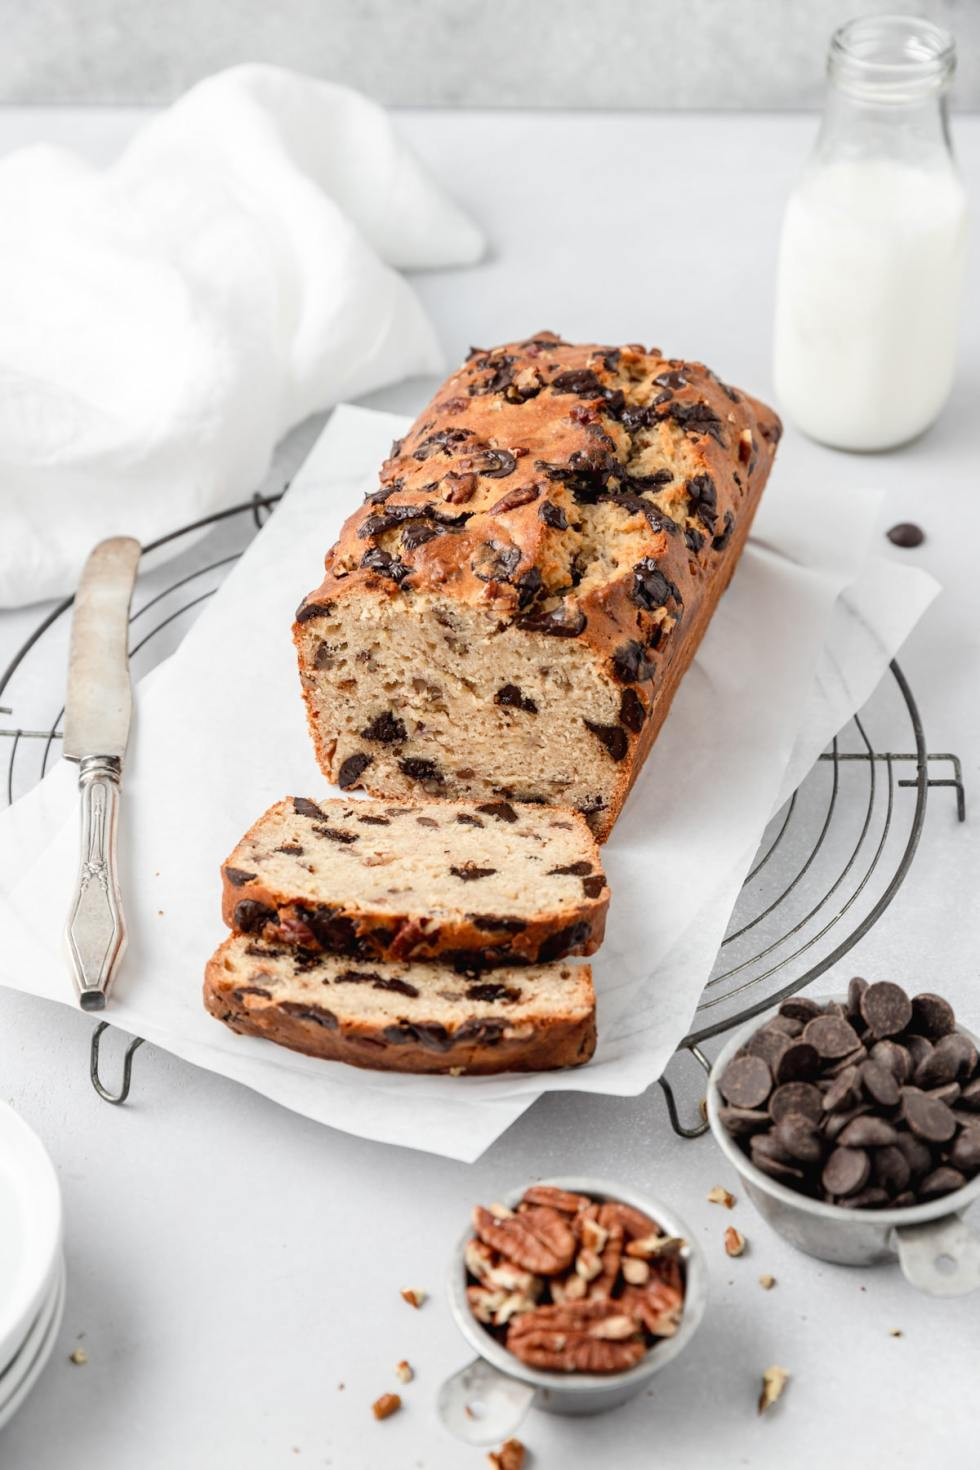 sourdough banana bread with chocolate chips and pecans